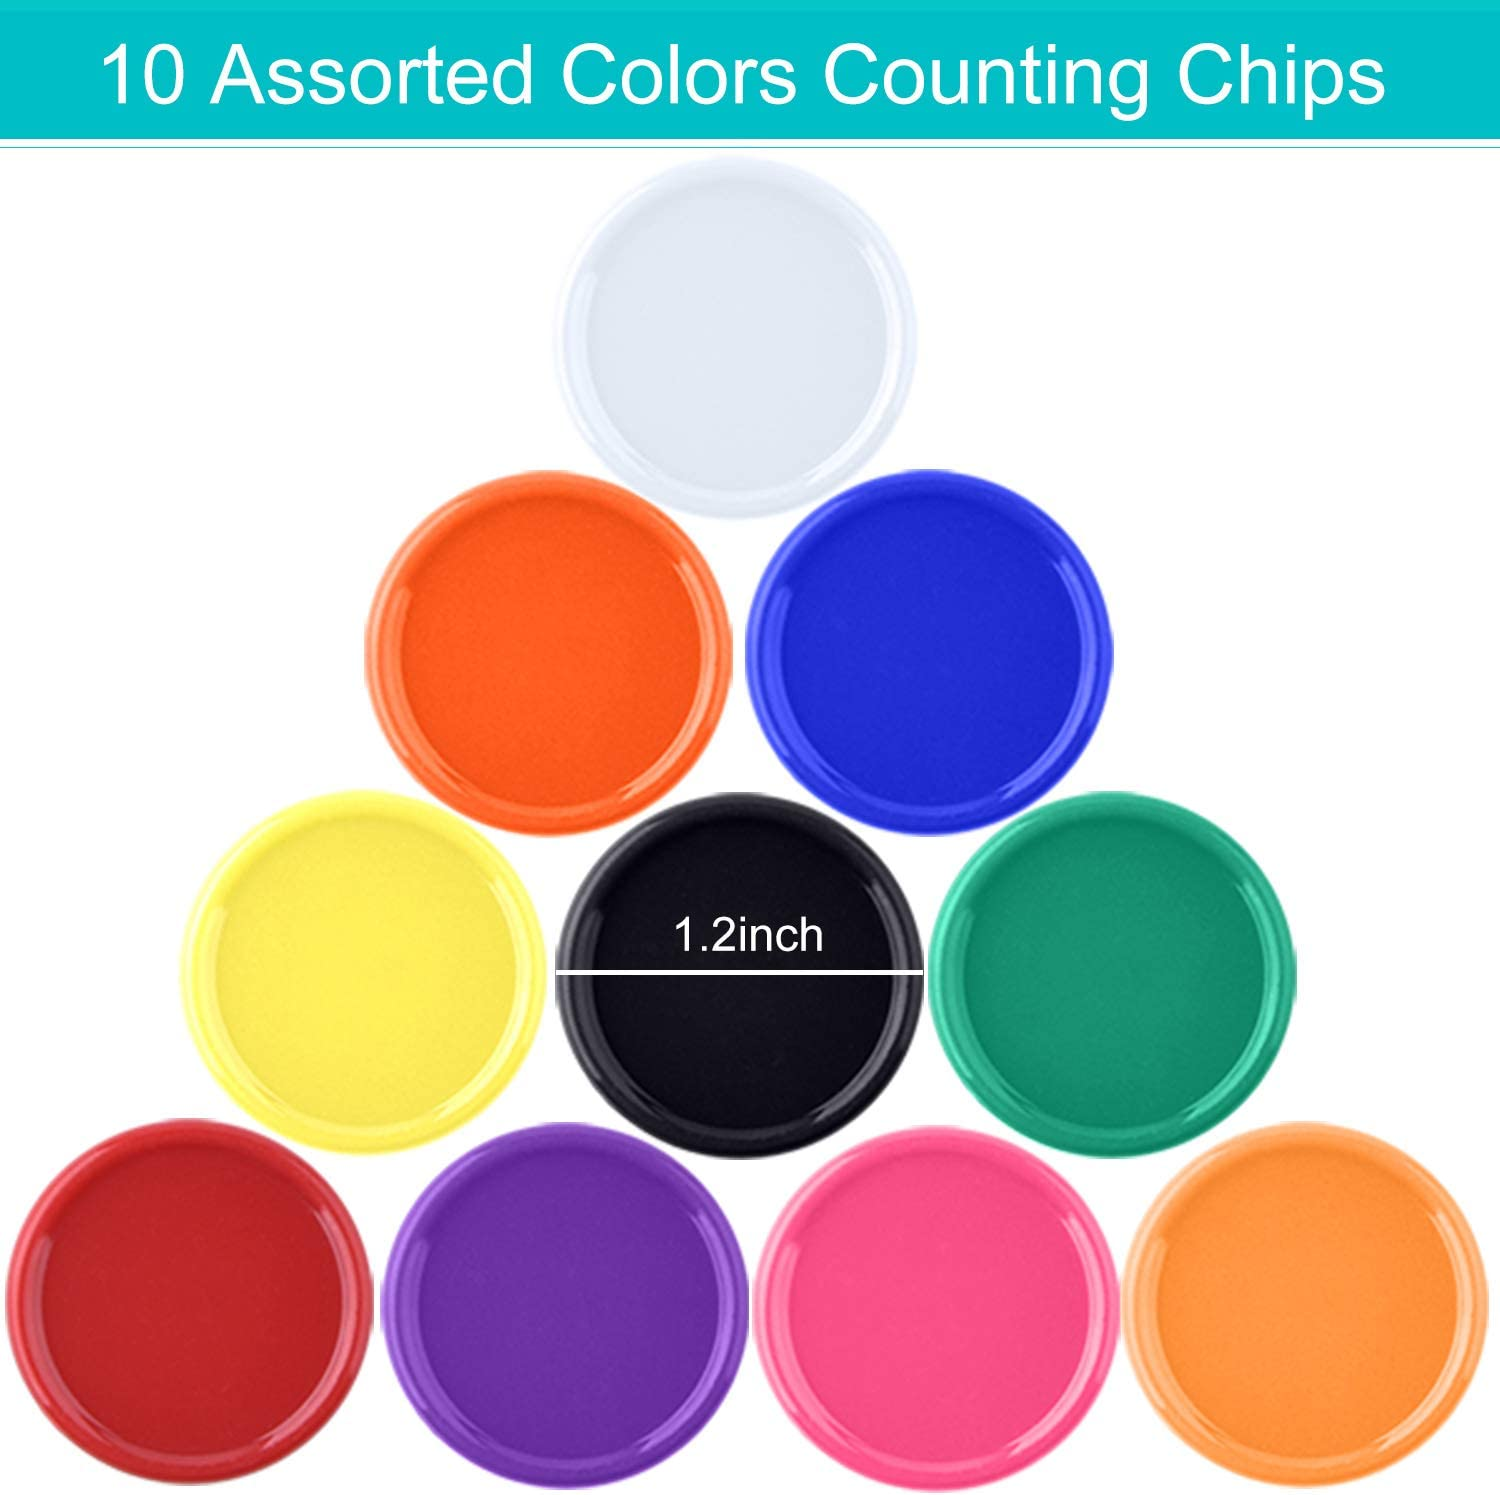 Coopay 300 Pieces 10 Colors Plastic Learning Counters Disks Bingo Chip Counting Discs Markers for Math Practice and Poker Chips Game Tokens,1 Inch